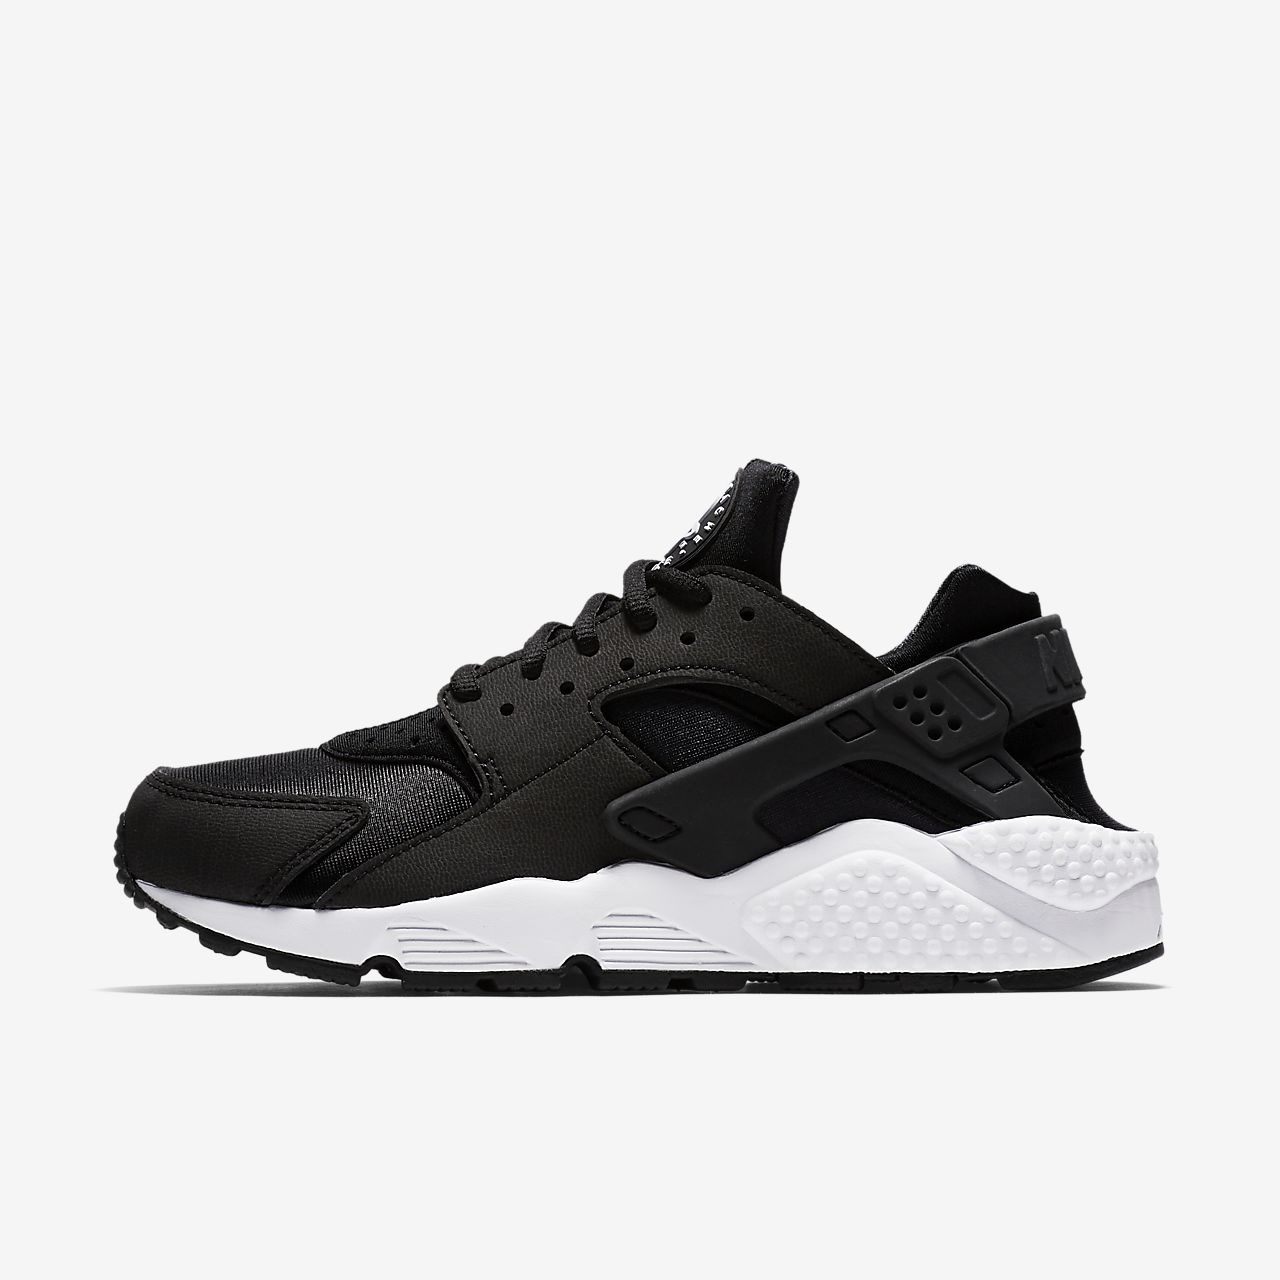 9ca3c56296e26f order nike air huarache run ultra schwarz weiss 1a9ca 476c6  greece nike  air huarache damenschuh 8ce6a a4153